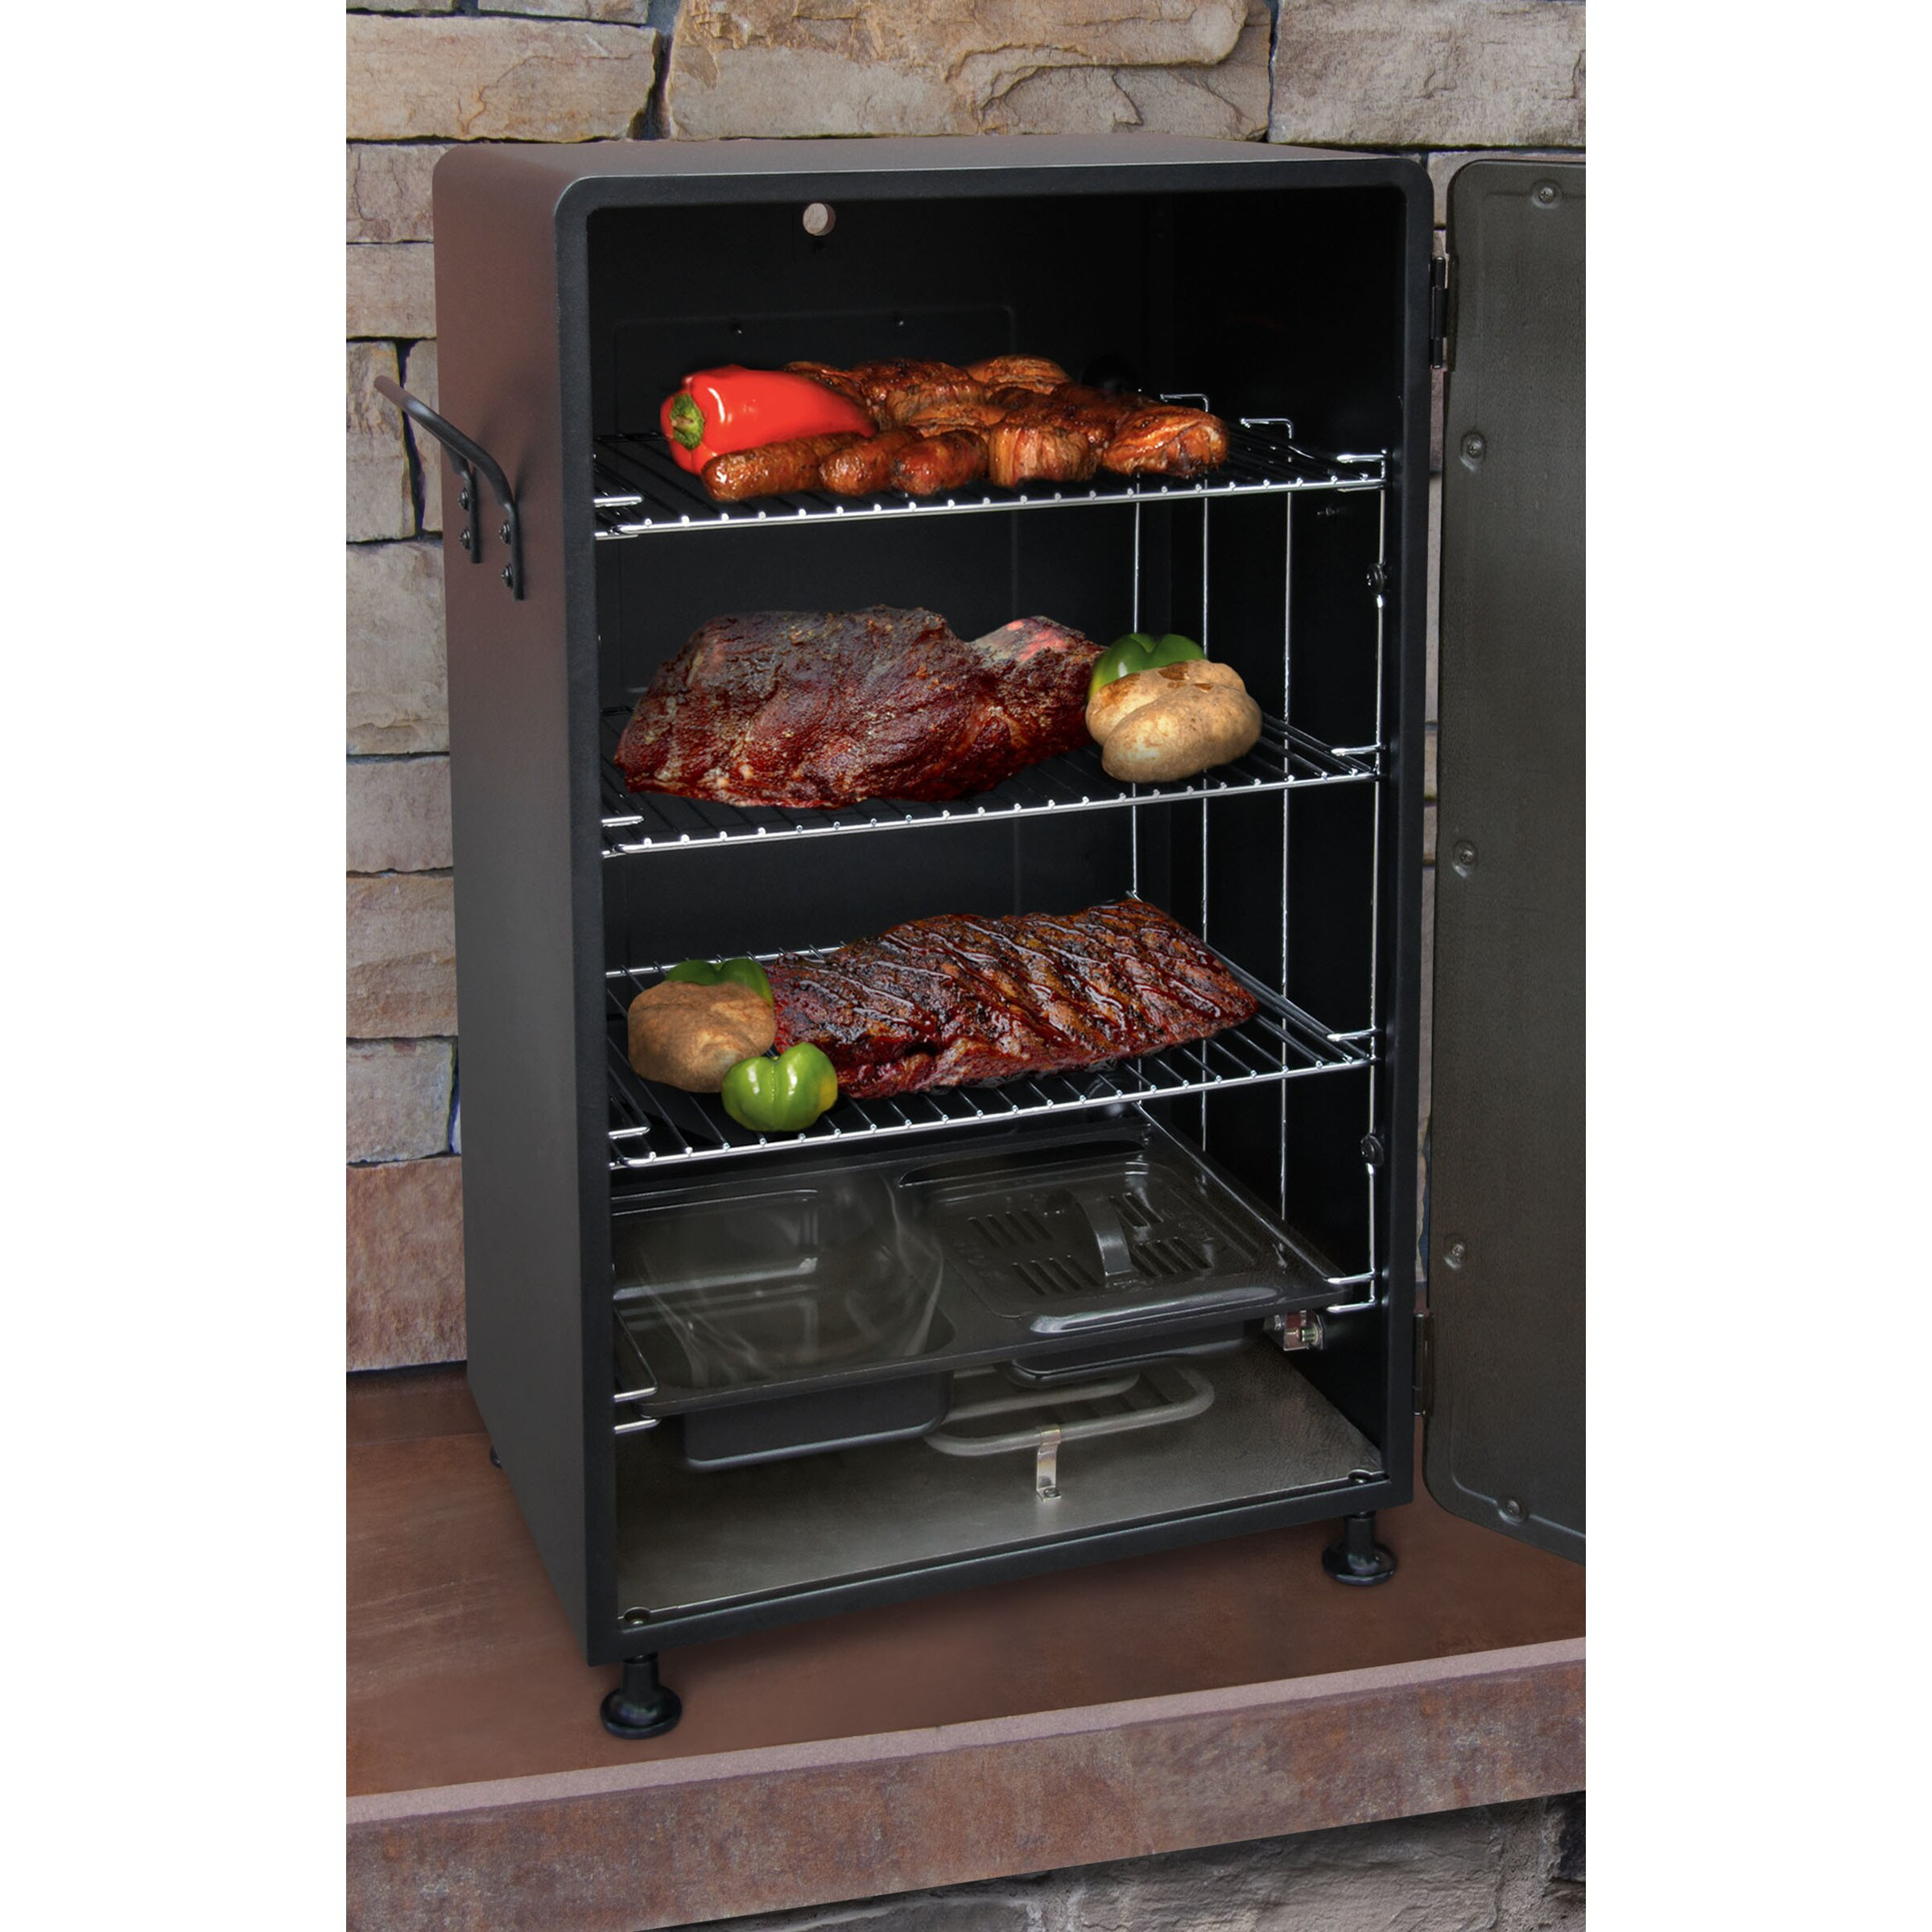 Smokintex Bbq Electric Smokers: Electric BBQ Smoker Barbecue Grill Outdoor Portable Meat